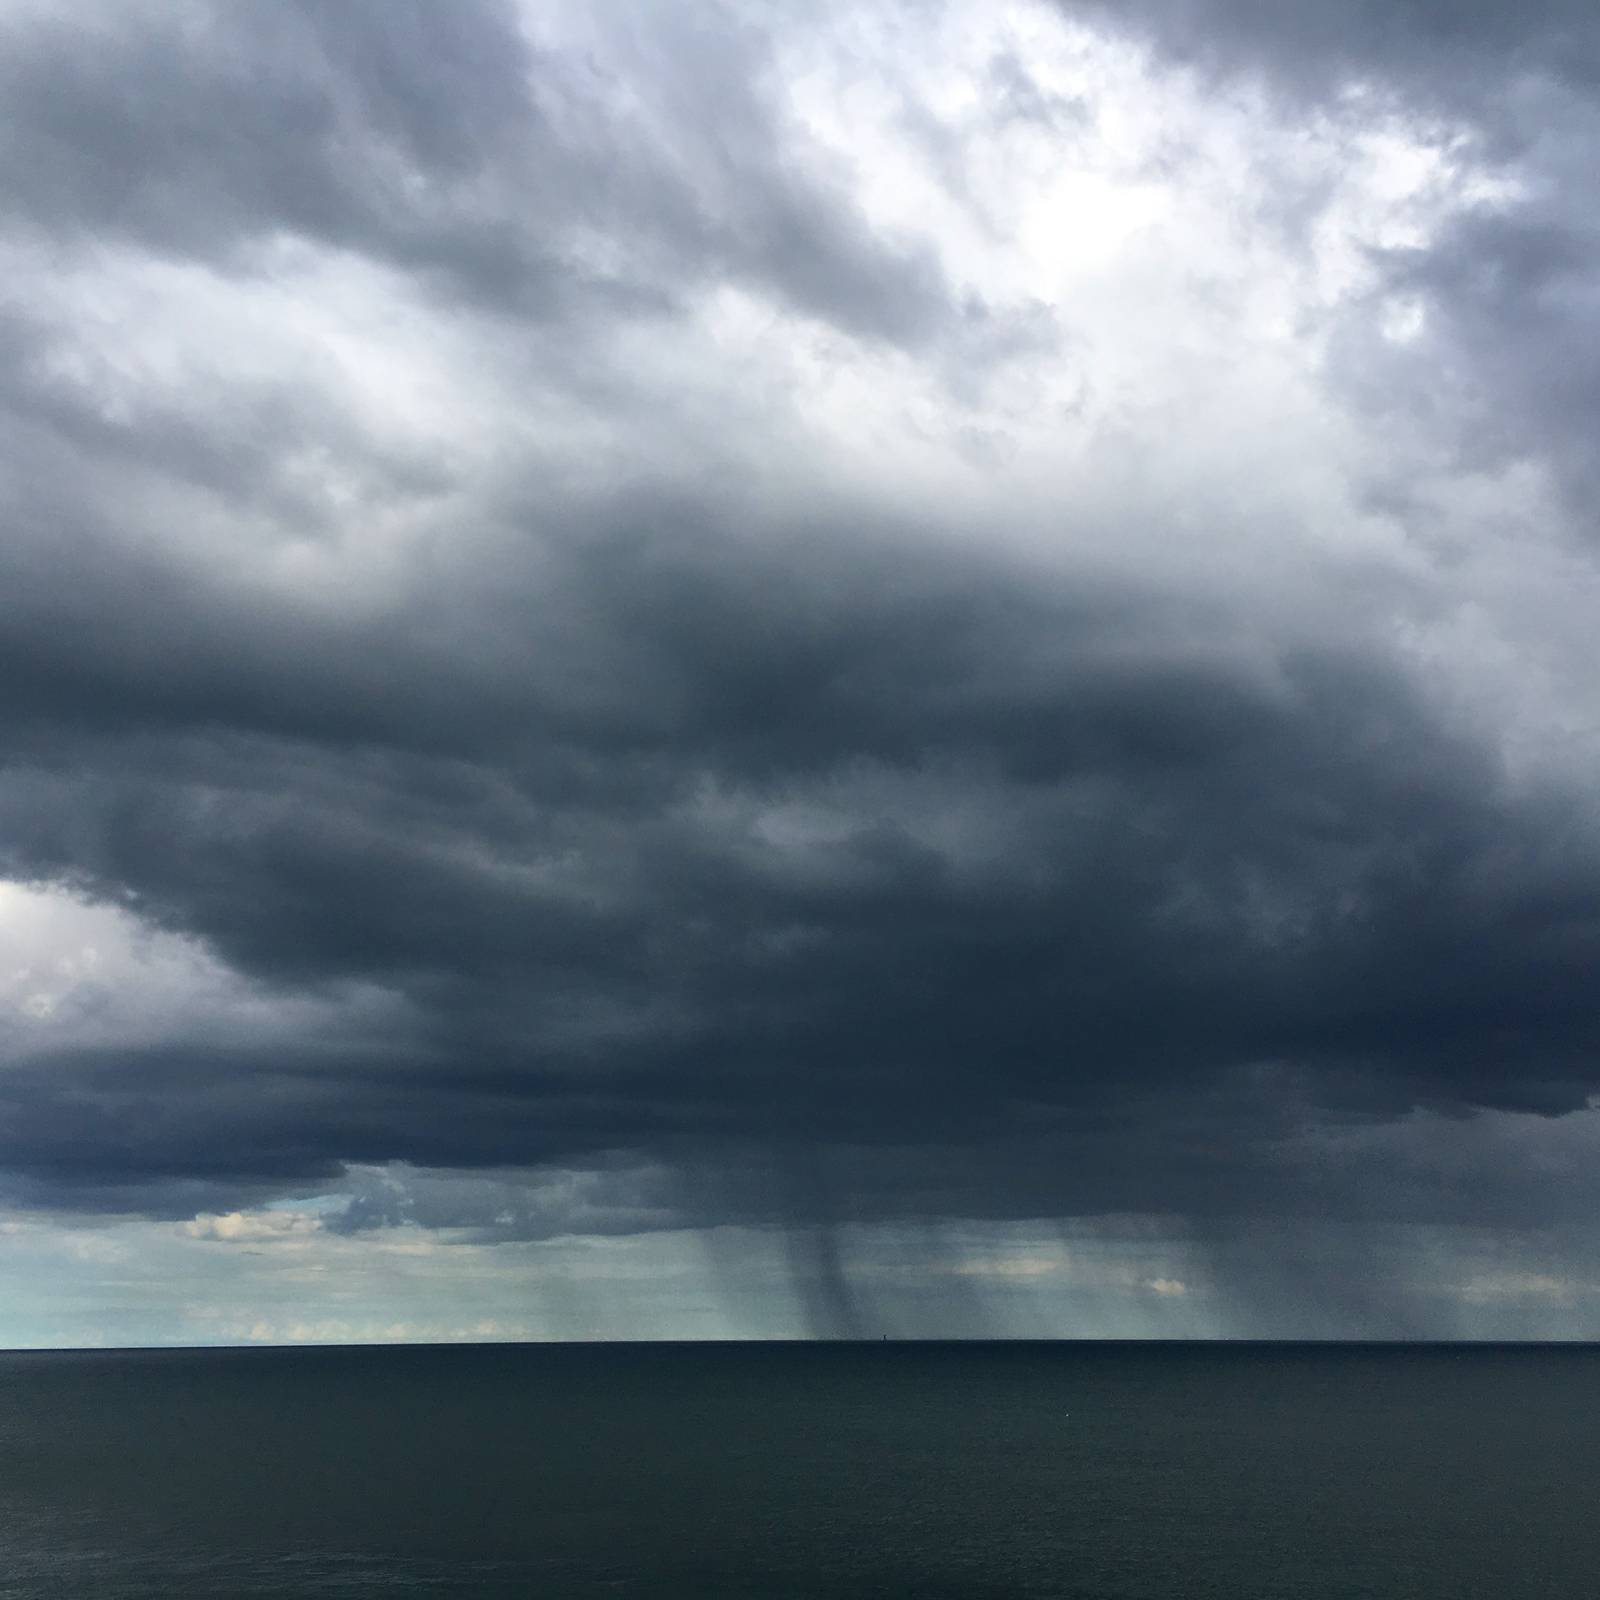 Rainc clouds over the Irish Sea, seen from Howth